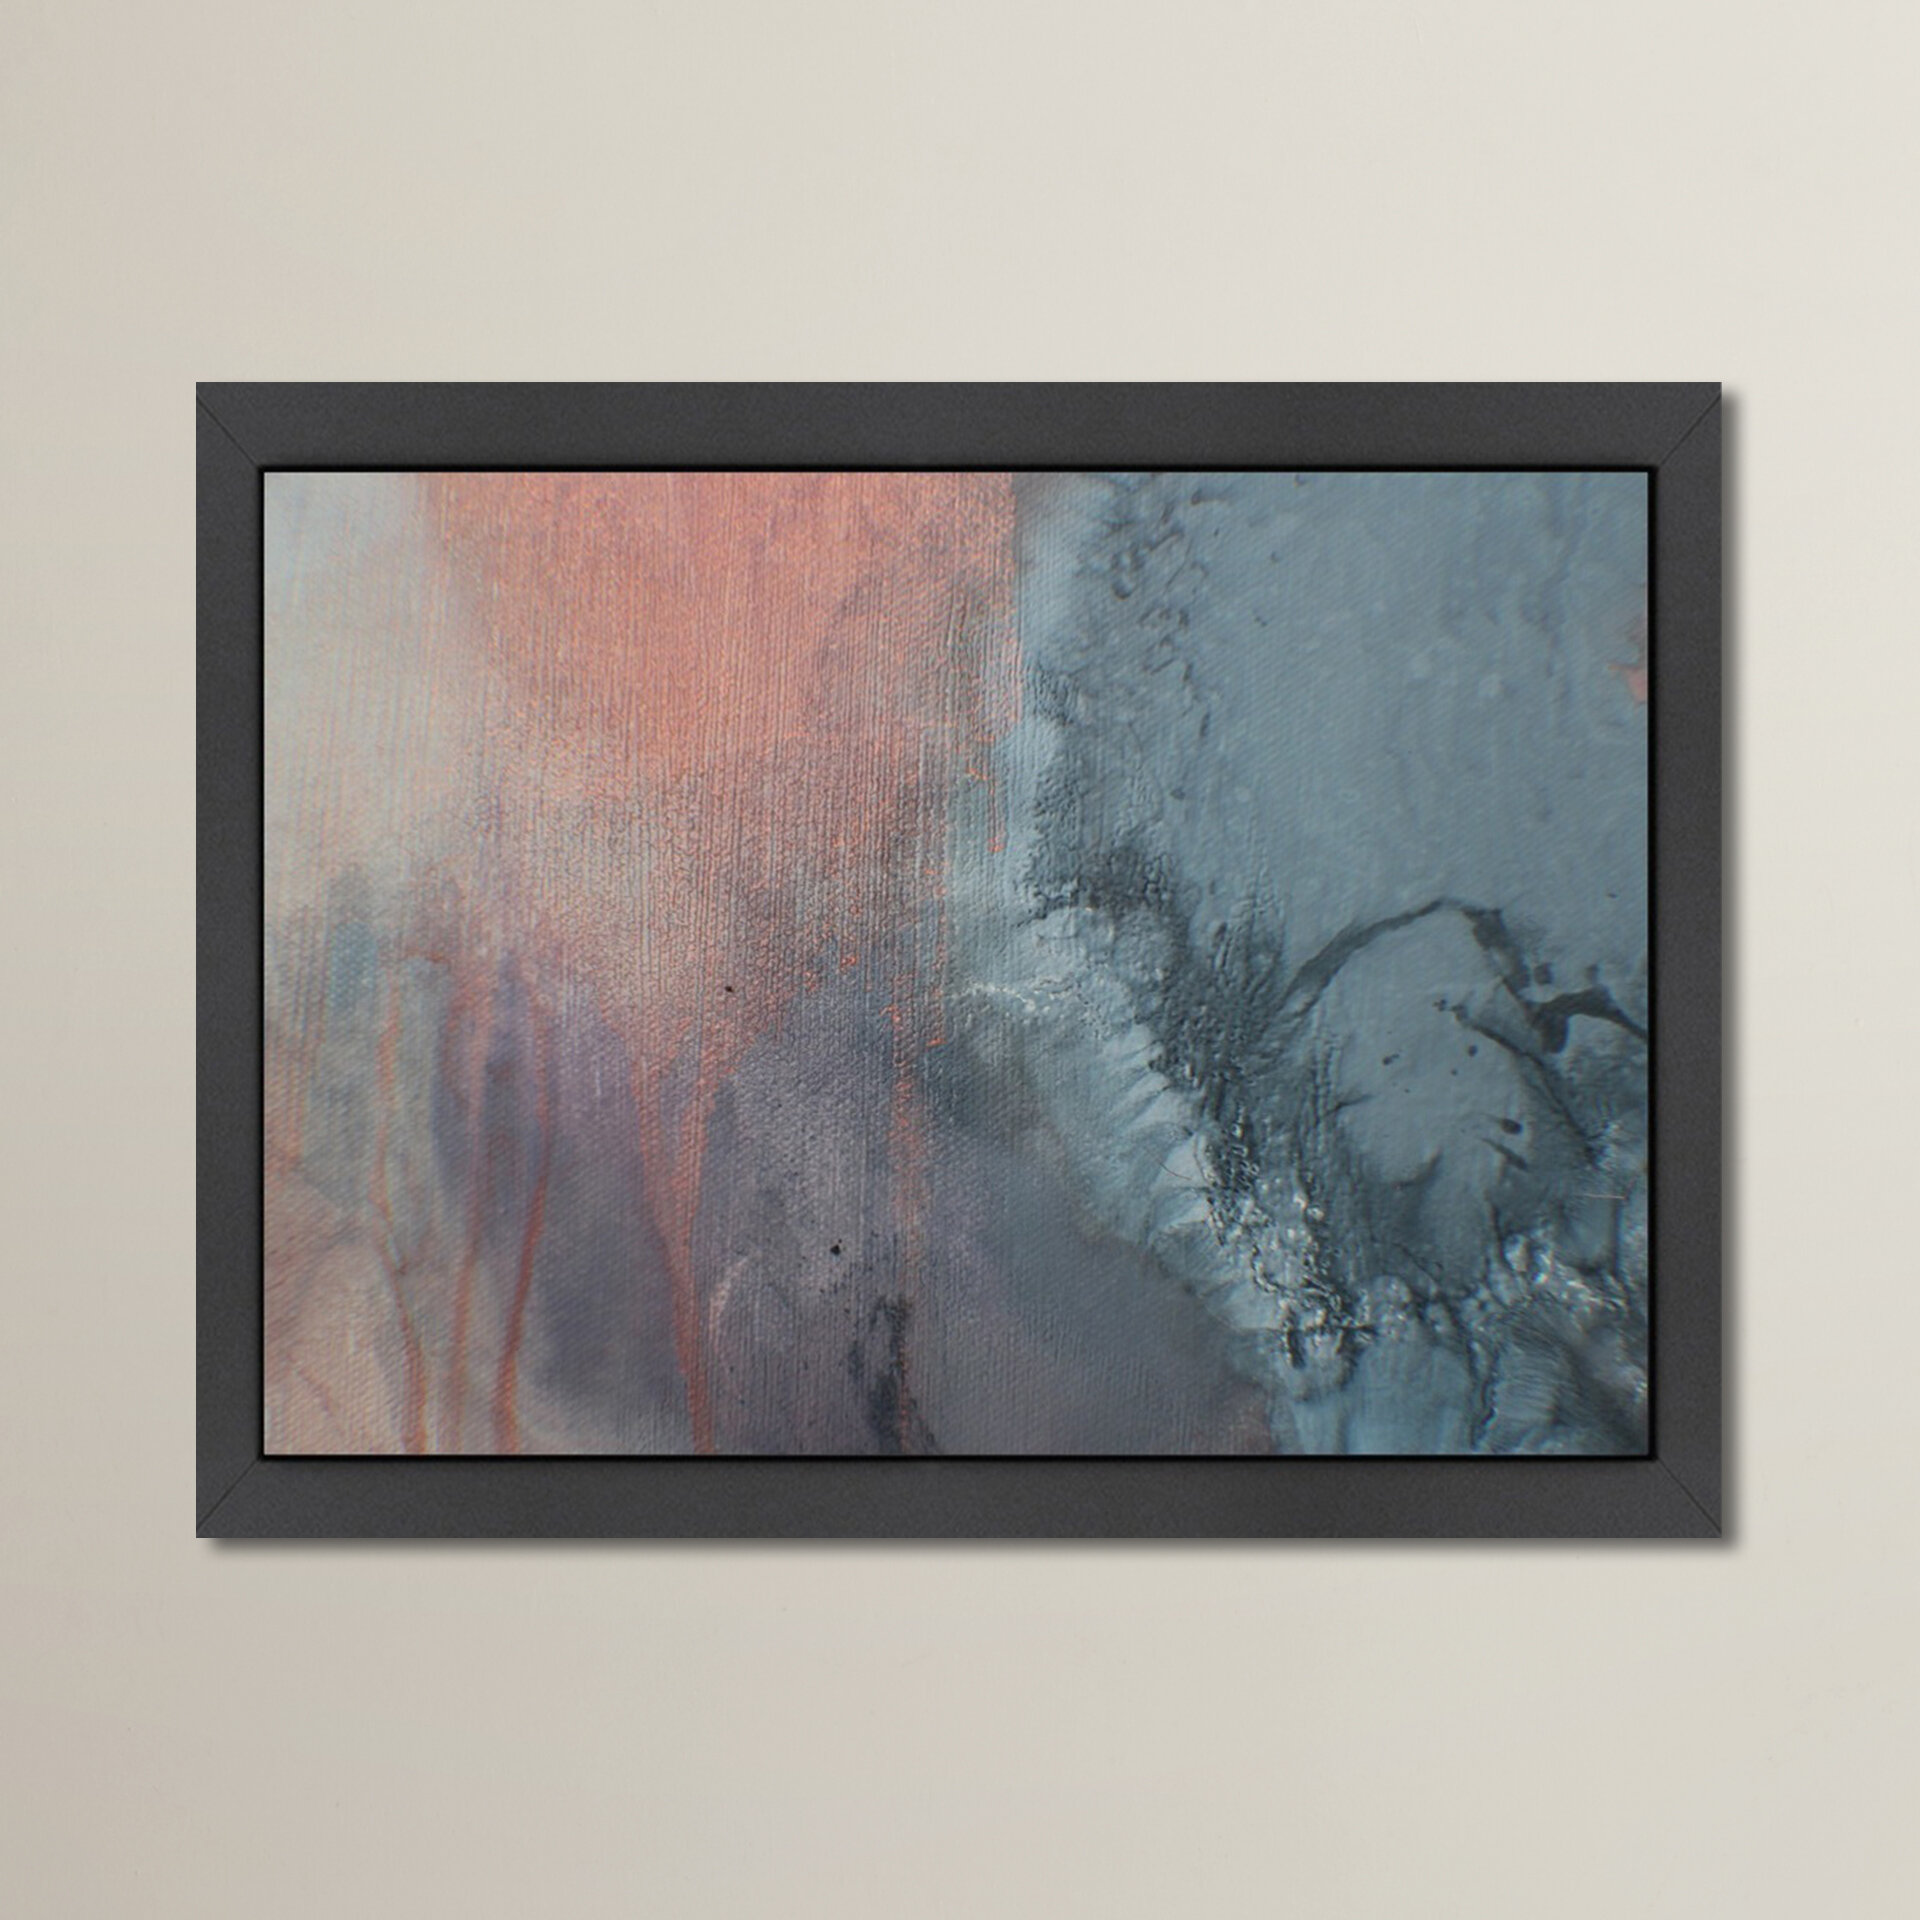 East Urban Home Grey And Peach Drips Deb Mcnaughton Framed Painting Print Wayfair